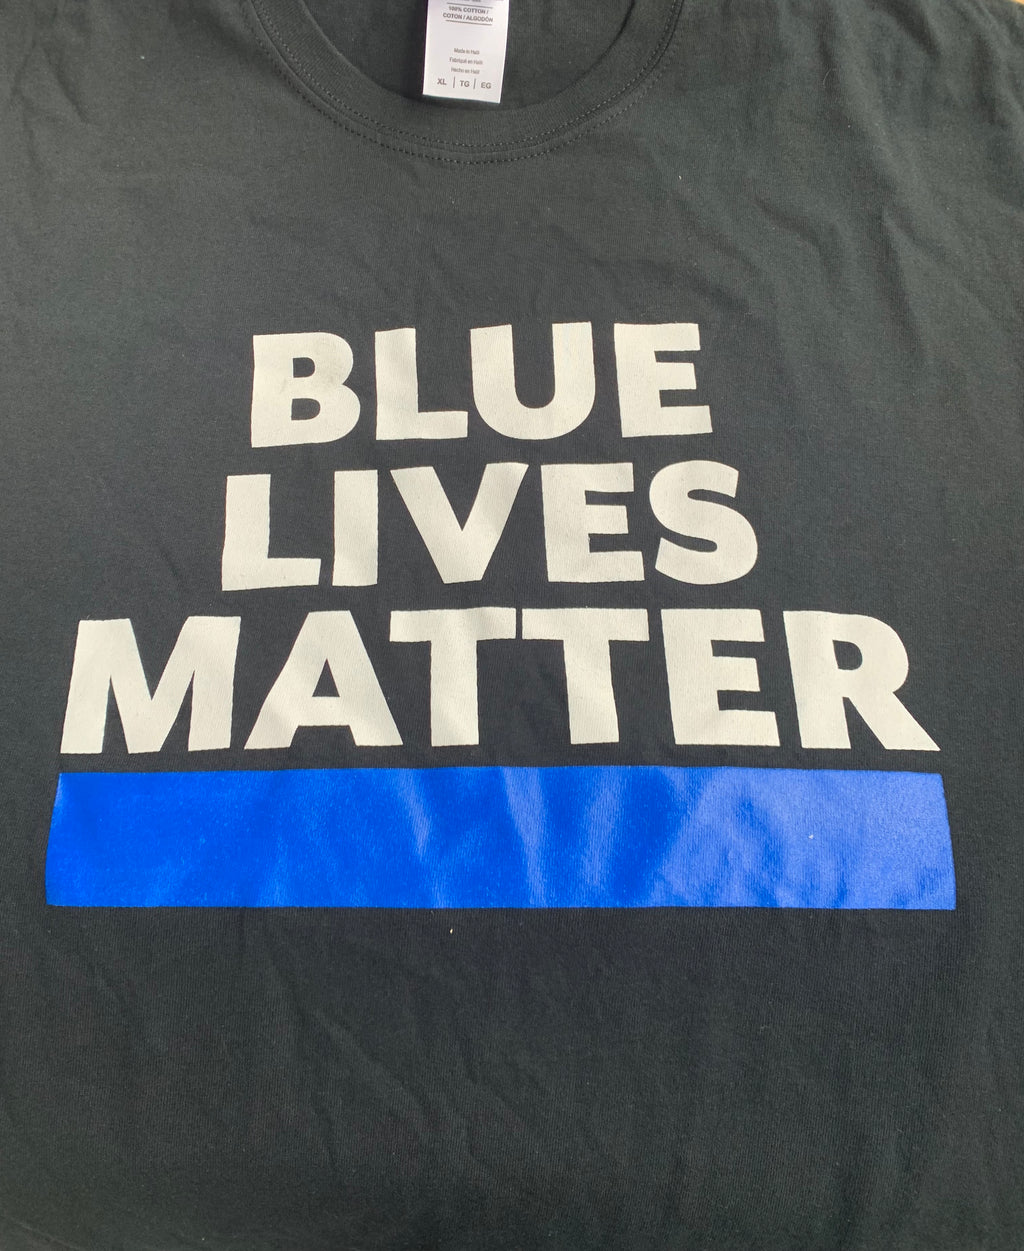 Blue Lives Matter - The Wall Kids, Inc.